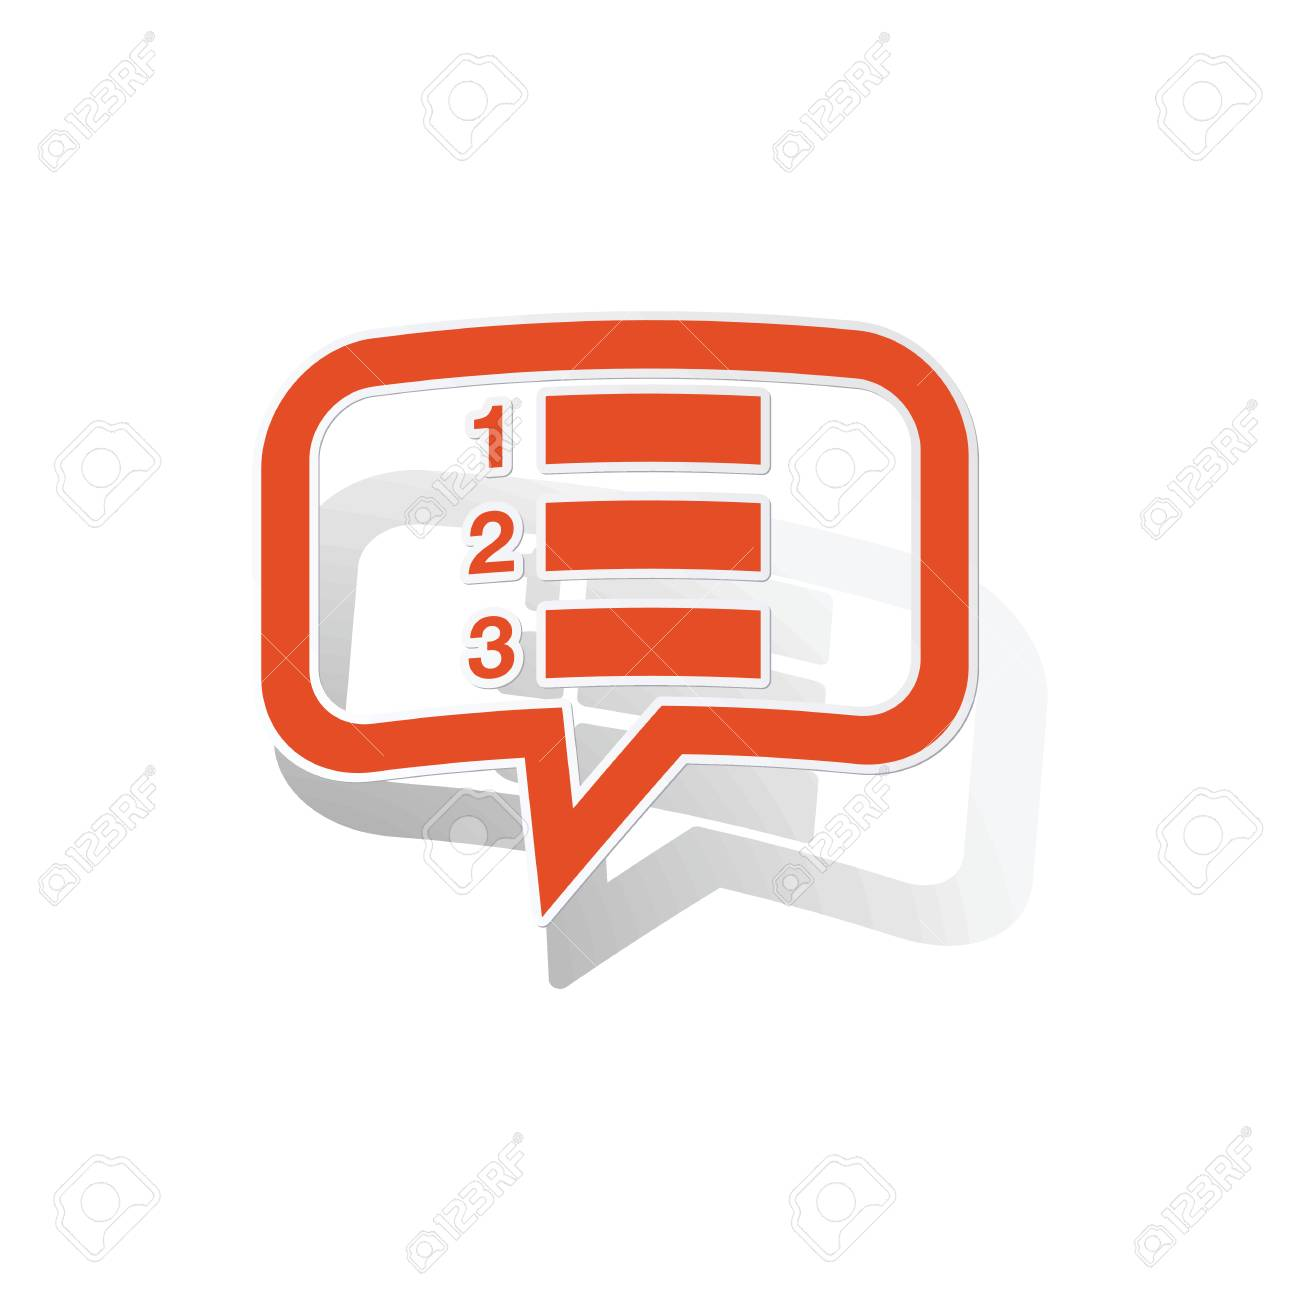 numbered list message sticker, orange chat bubble with image